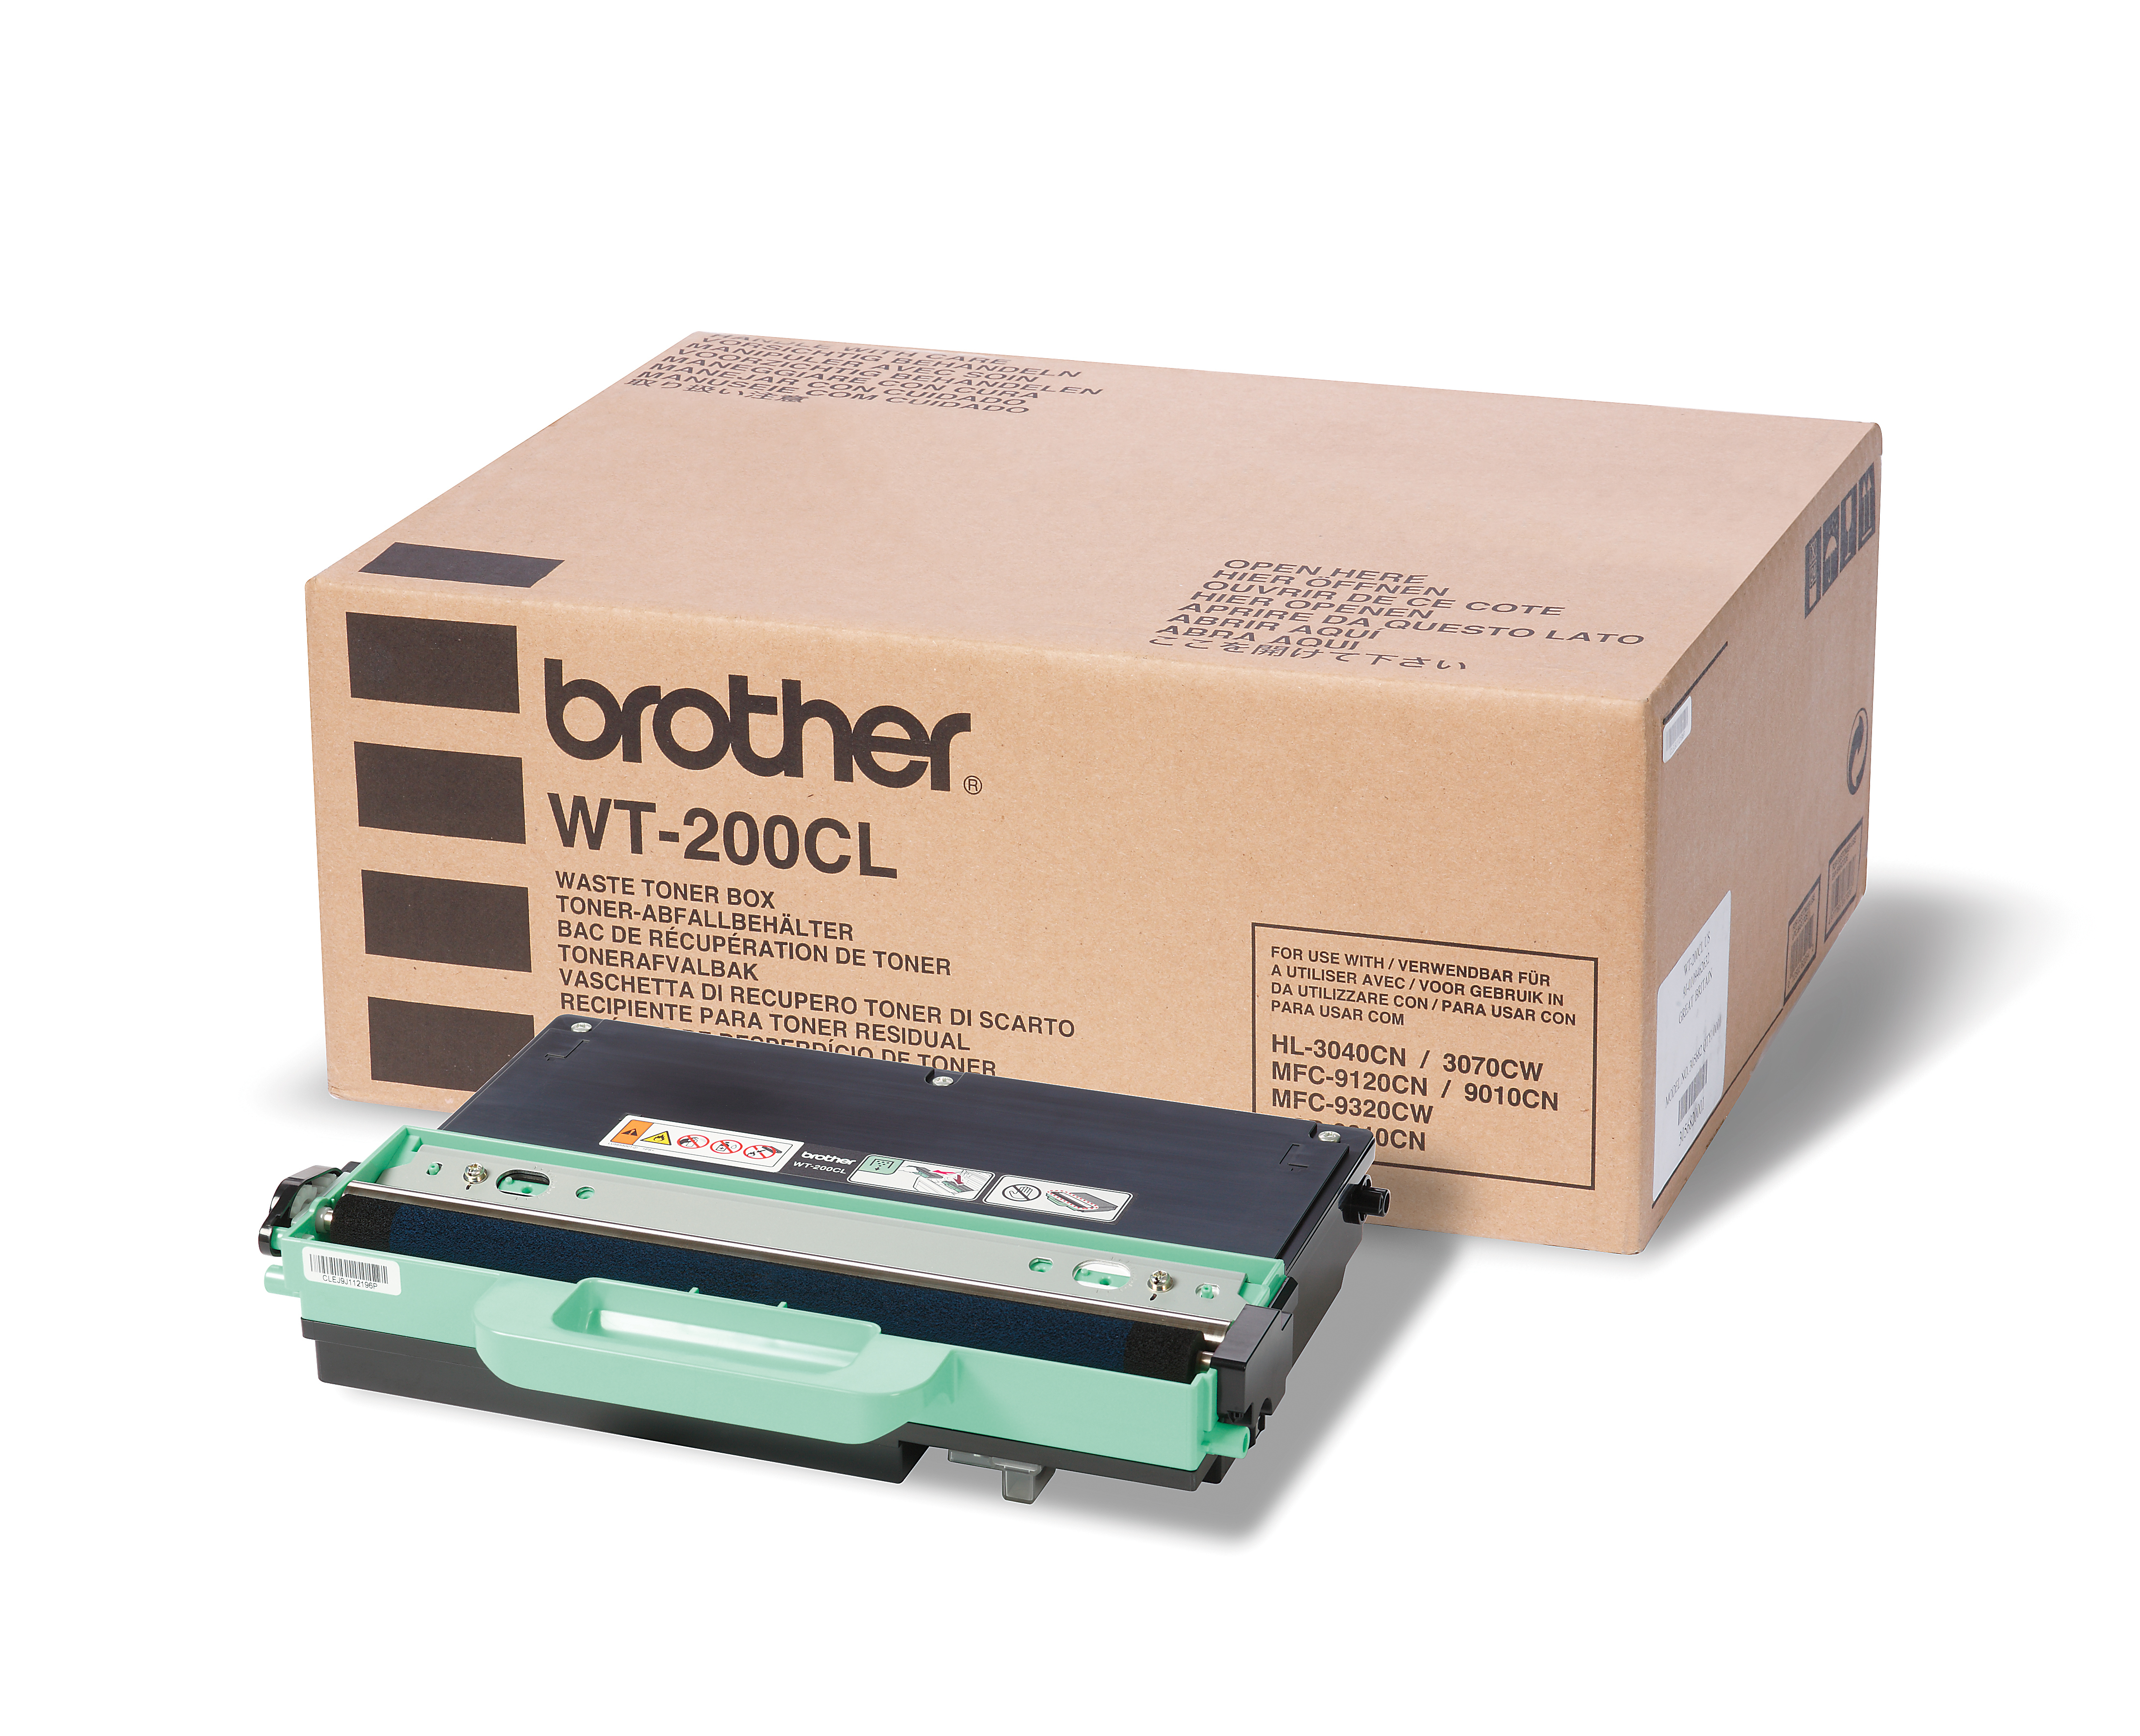 Brother Wt200cl Waste Toner Unit Wt200cl - WC01